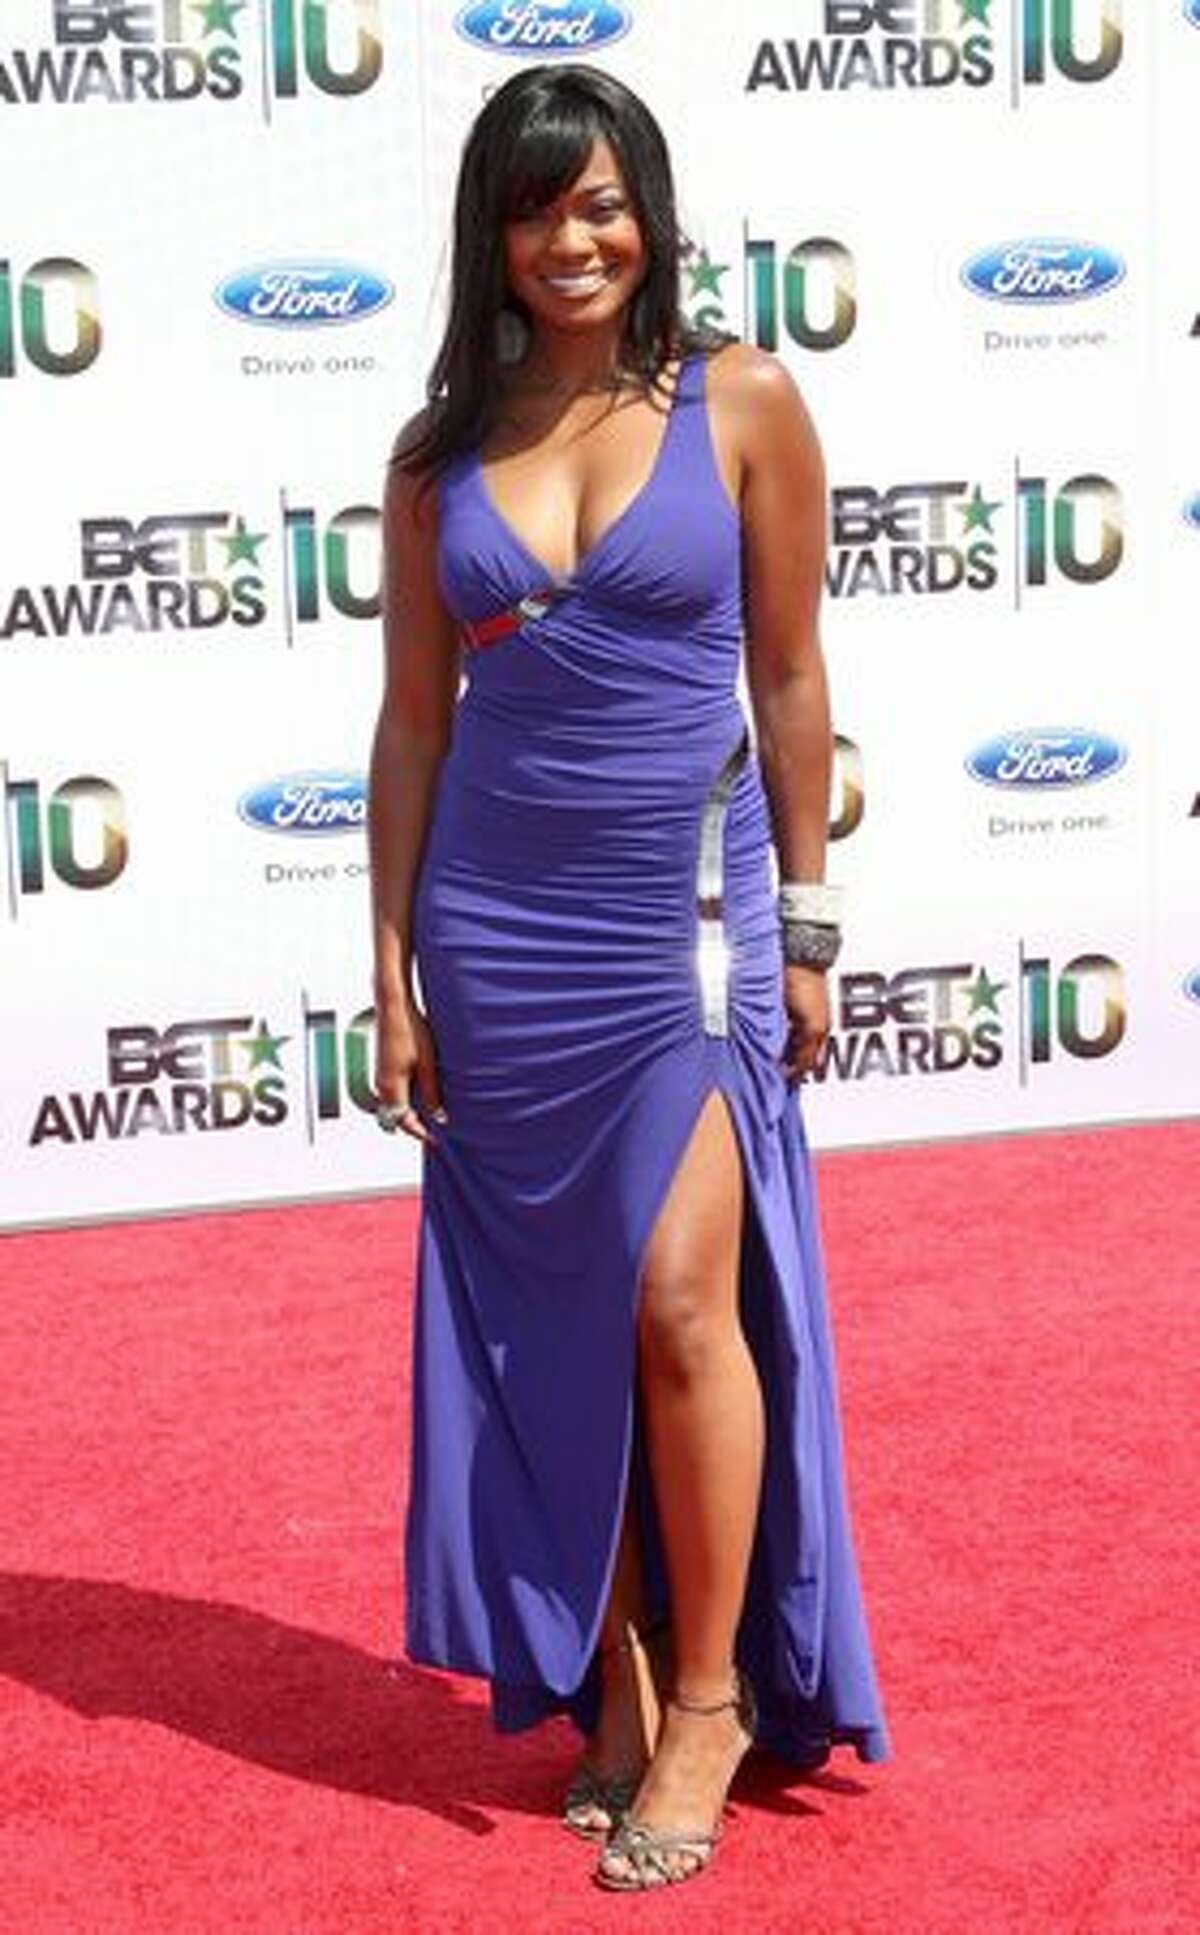 Actress Tatyana Ali arrives at the 2010 BET Awards held at the Shrine Auditorium in Los Angeles on Sunday, June 27, 2010.